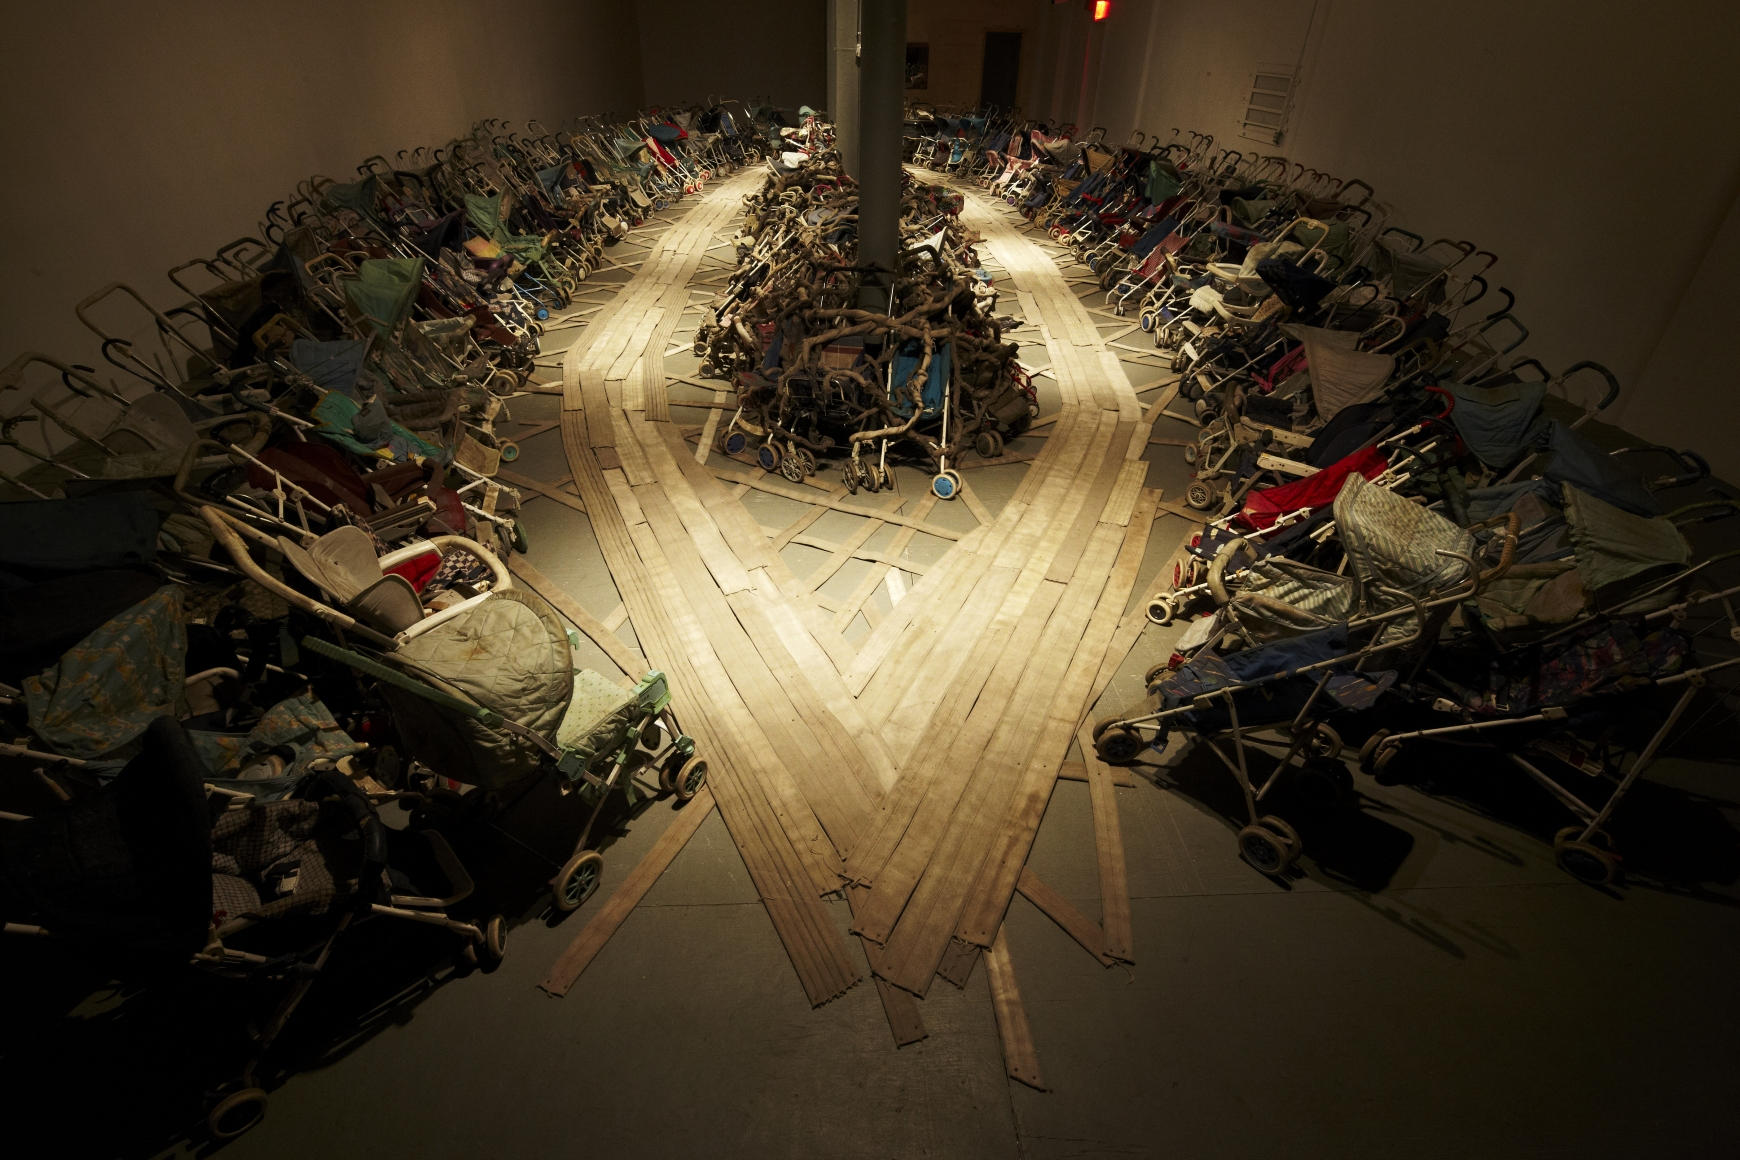 """Nari Ward, Amazing Grace, 1993. Approx. 300 baby strollers and fire hoses, dimensions variable. Installation view: """"NYC 1993: Experimental Jet Set, Trash and No Star,"""" New Museum, New York, 2013. Courtesy the artist and Lehmann Maupin, New York and Hong Kong. Photo: Jesse Untracht-Oakner"""